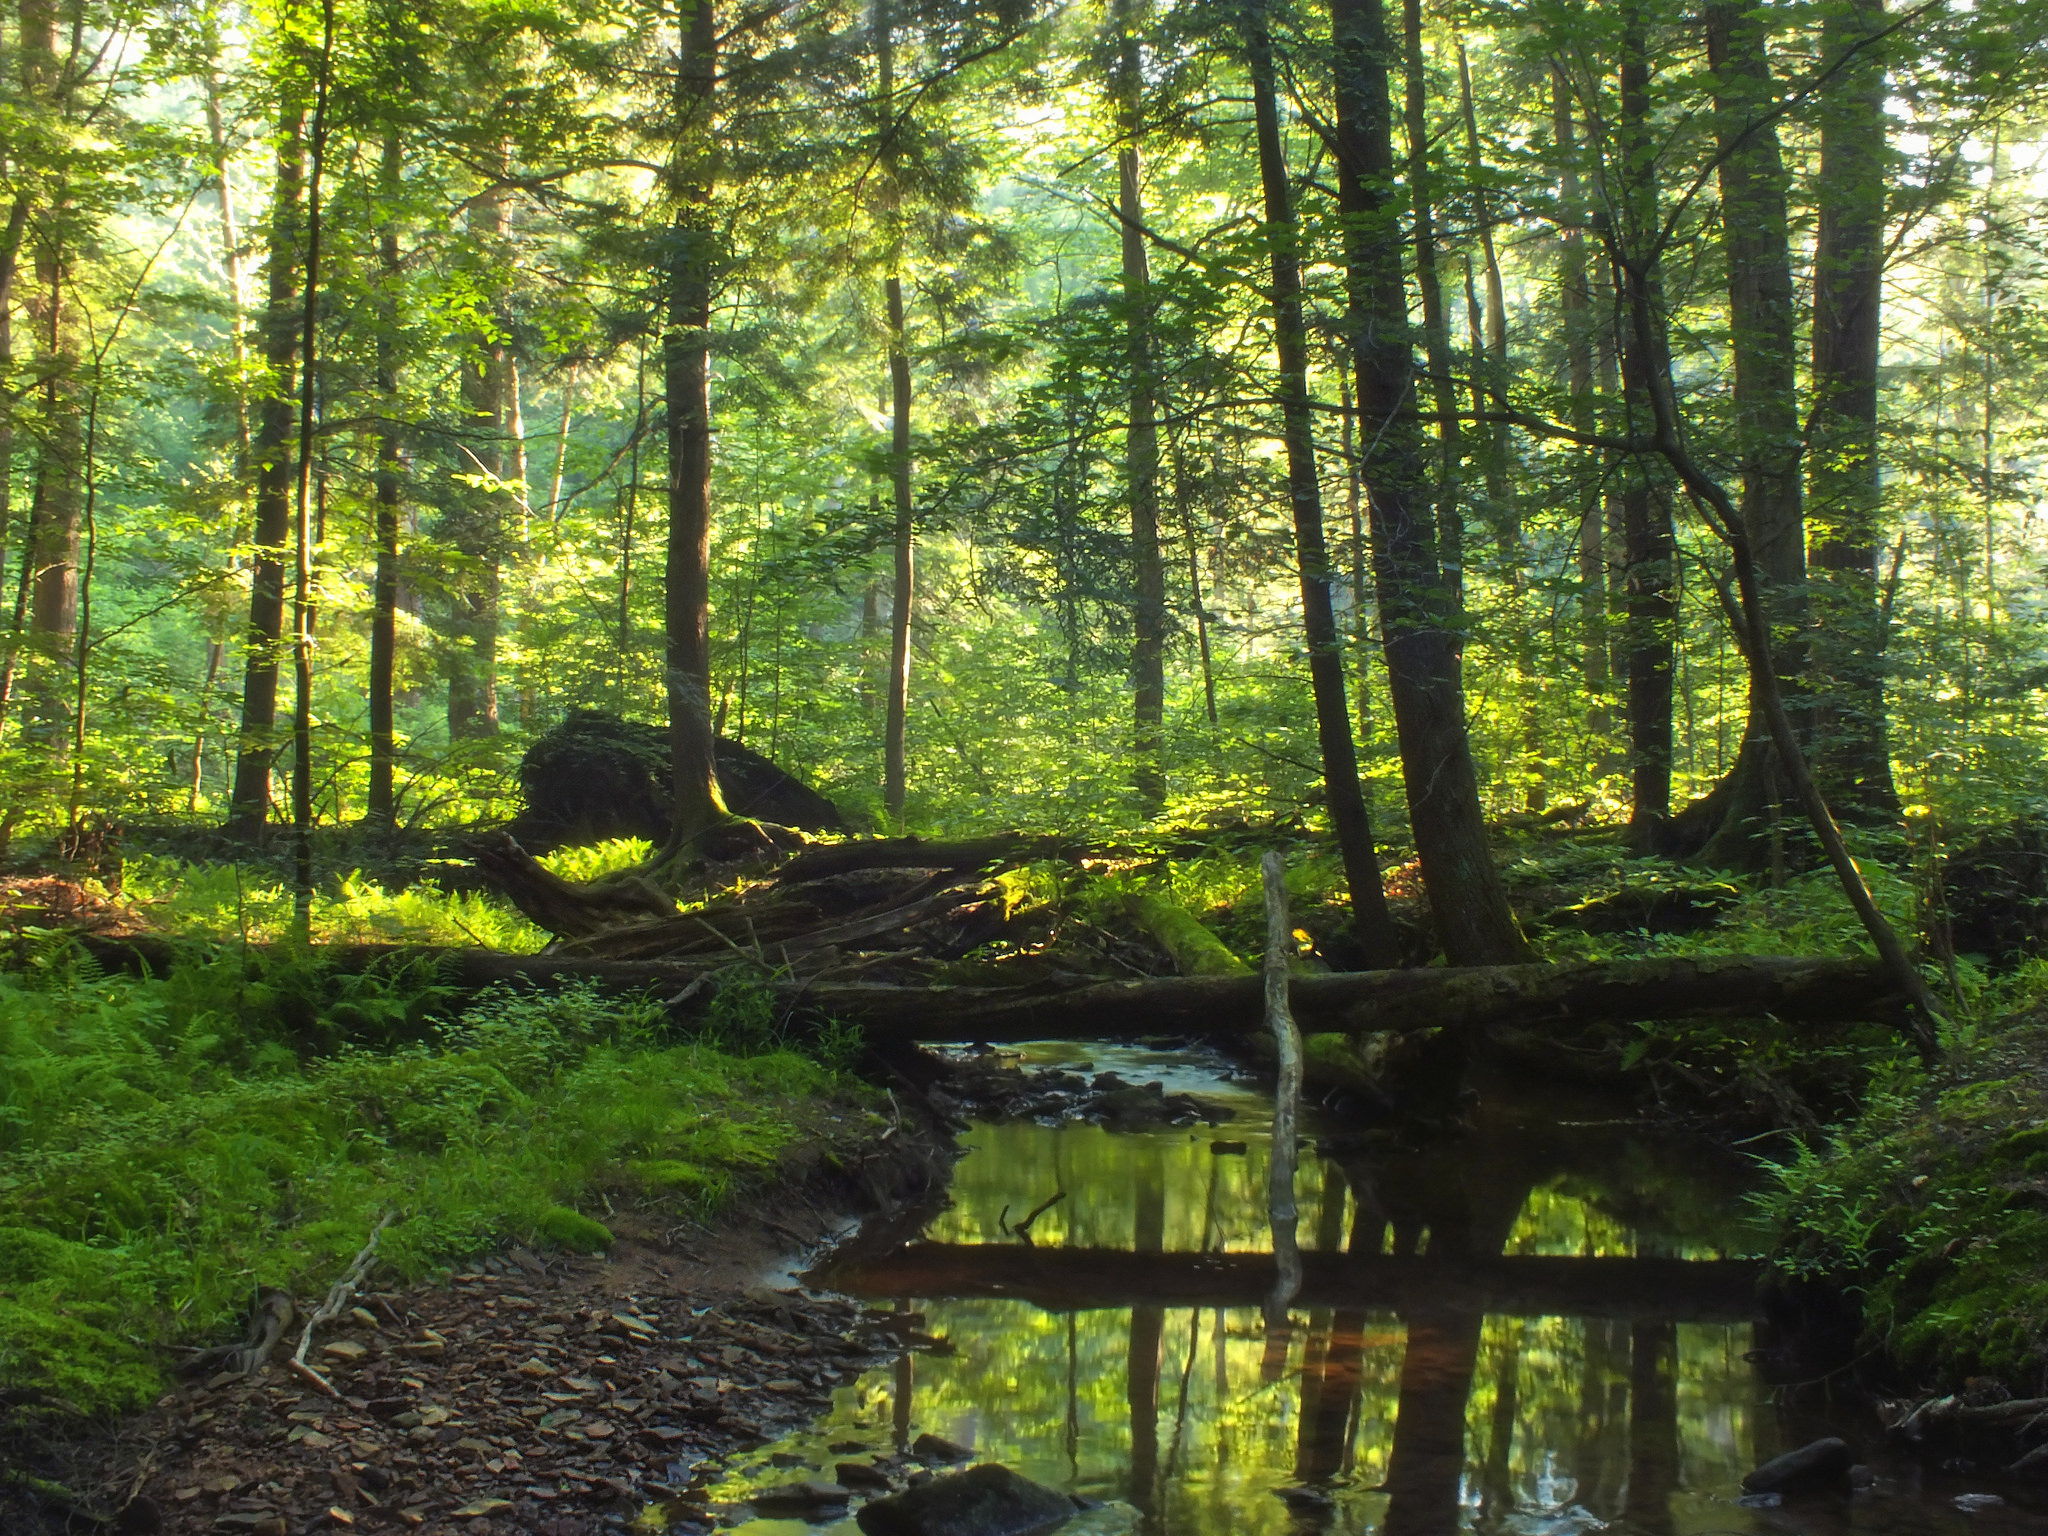 allegheny national forest has an ancient forest in